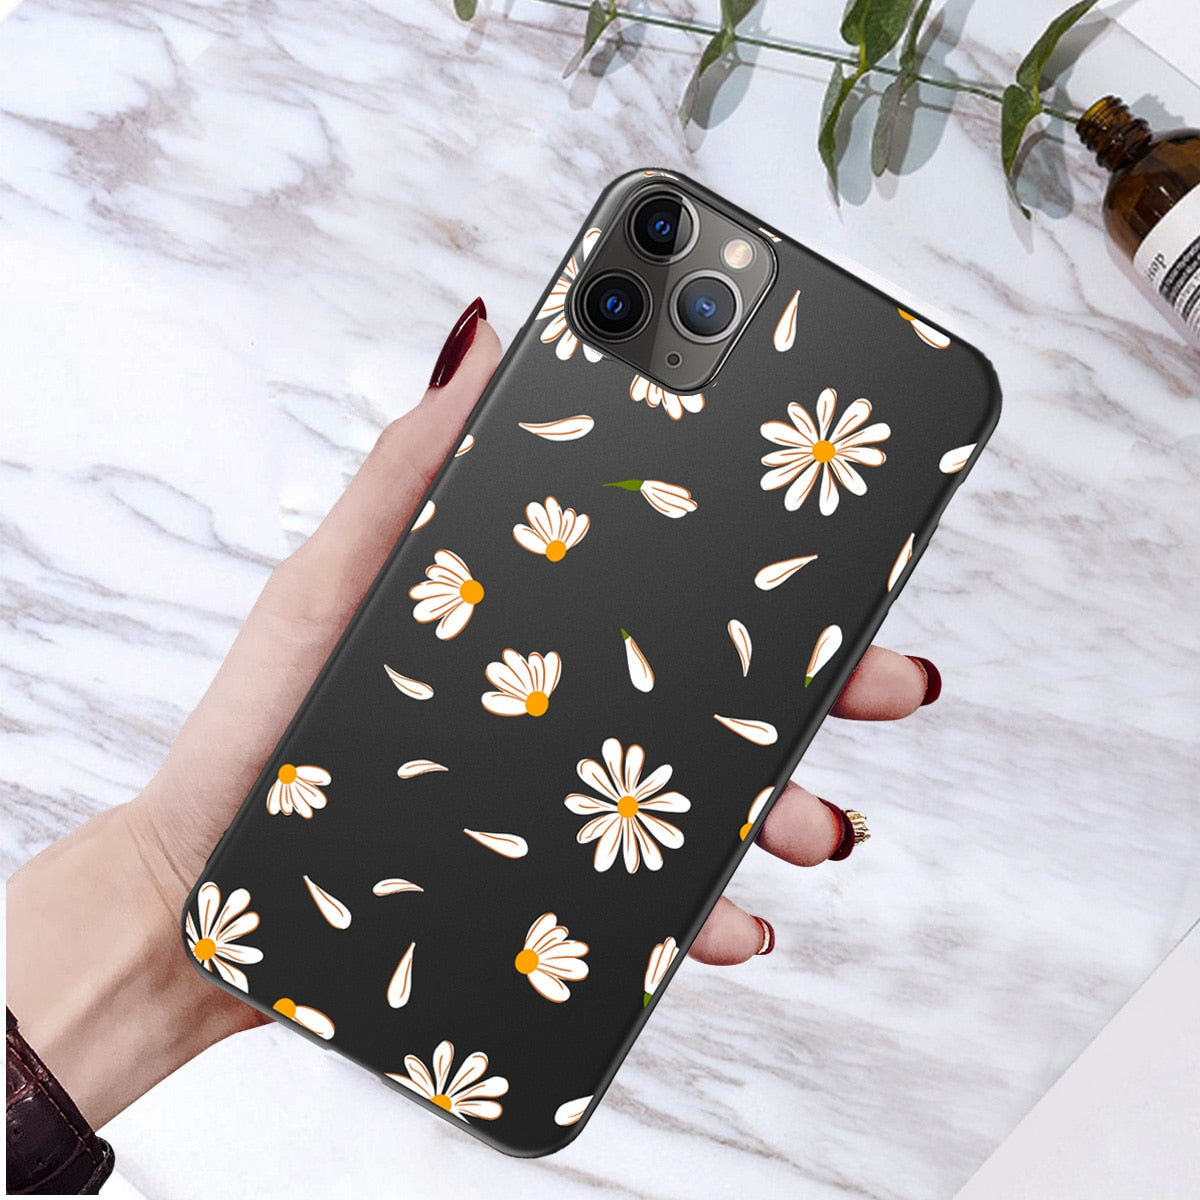 bluesea Art Floral Daisy Phone Case For iPhone 11 X XR XS Max 6S 7 8 7Plus 5 Fashion Daisy Flower Case Soft TPU Back Cases Cover